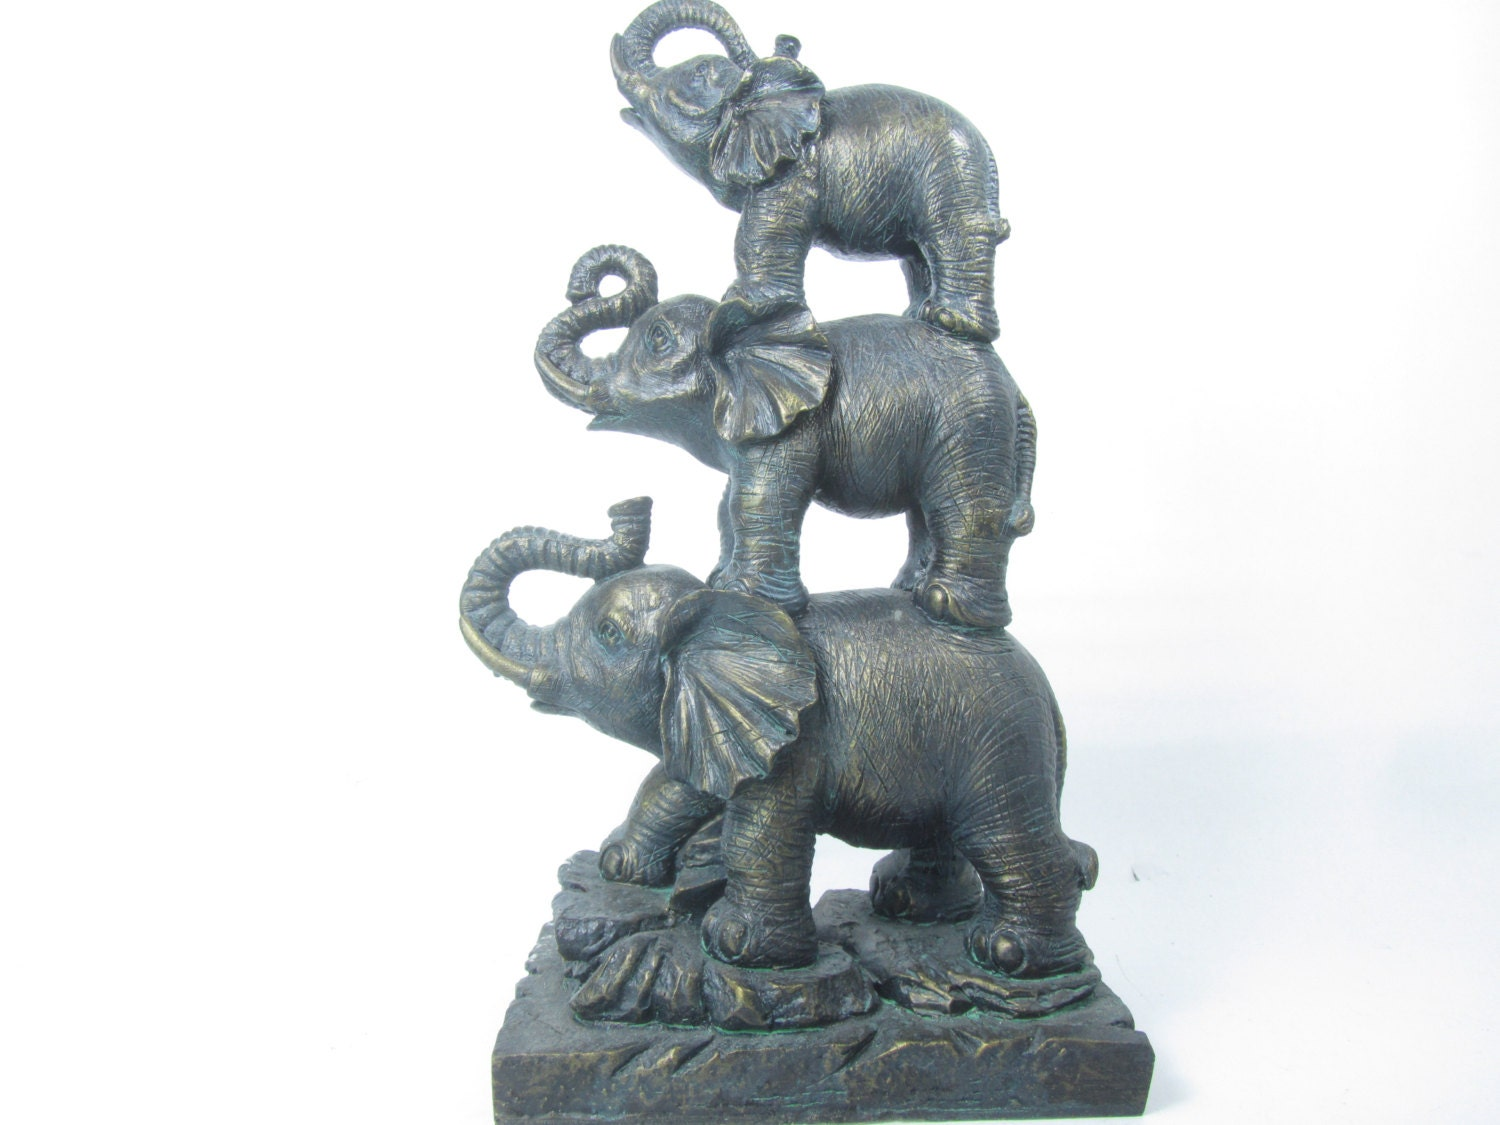 Https Etsy Com Listing 227914923 Elephants Statue Figurine Home Decor